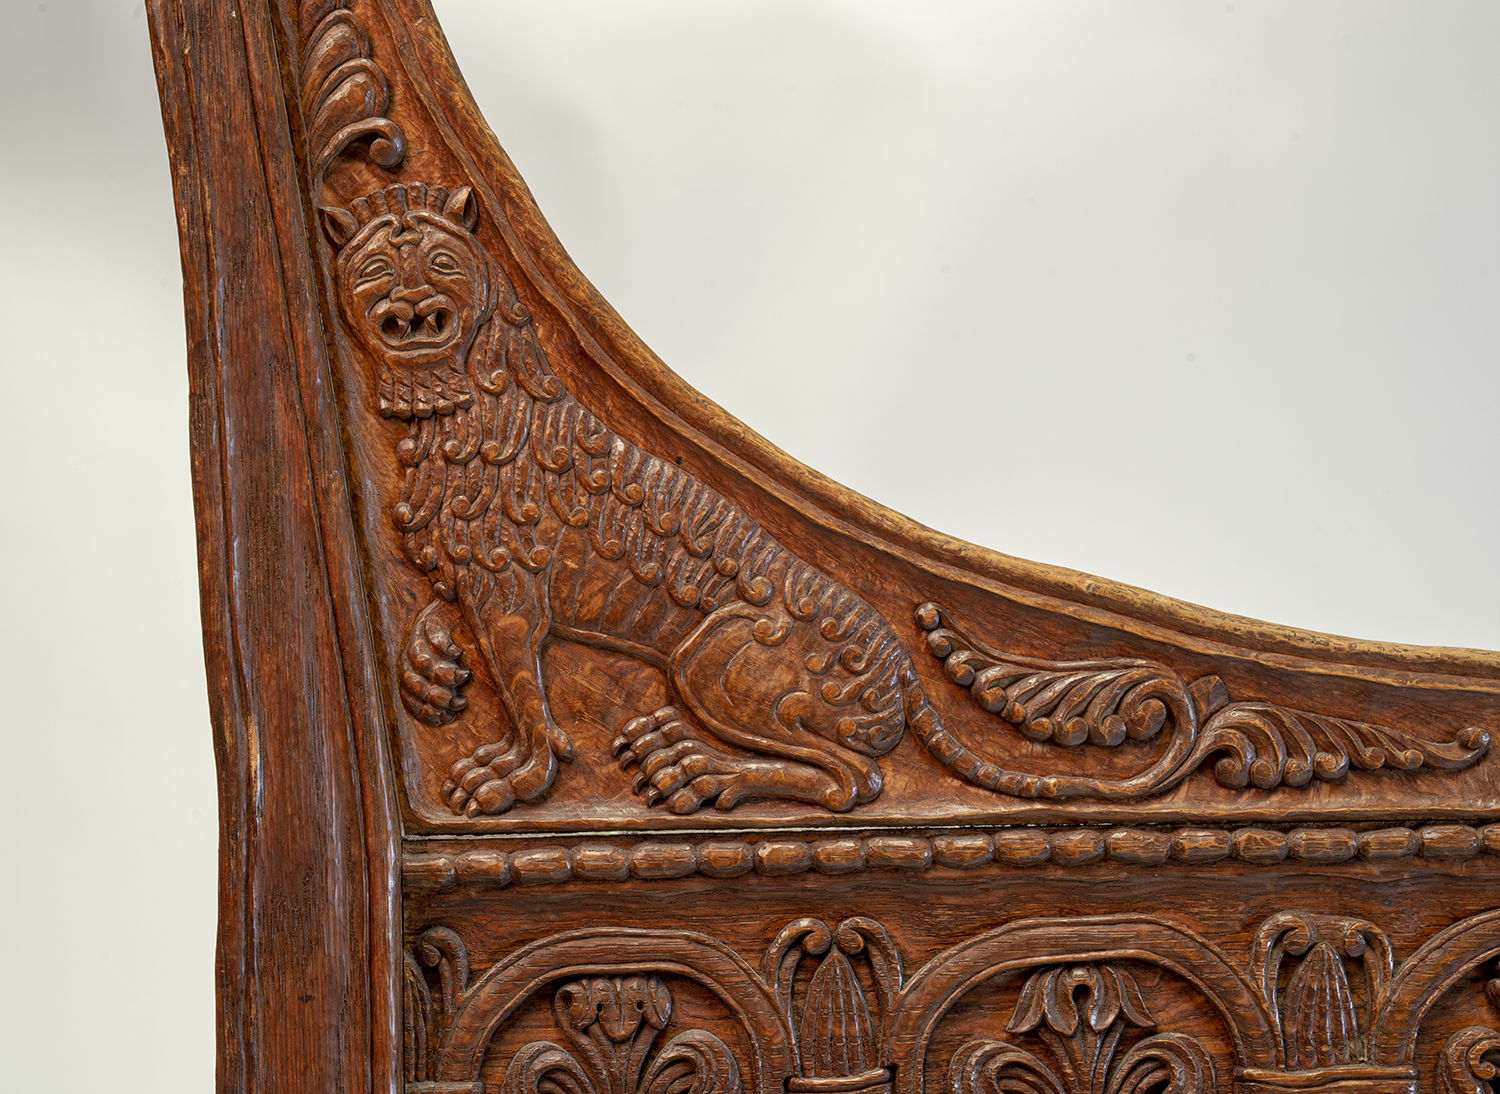 Figure 18: Bryn Athyn Cathedral Tyldal-style chair depicting a lion. This chair also features a depiction of Samson slaying a lion (Judges 14:5) on the chair back (front side).